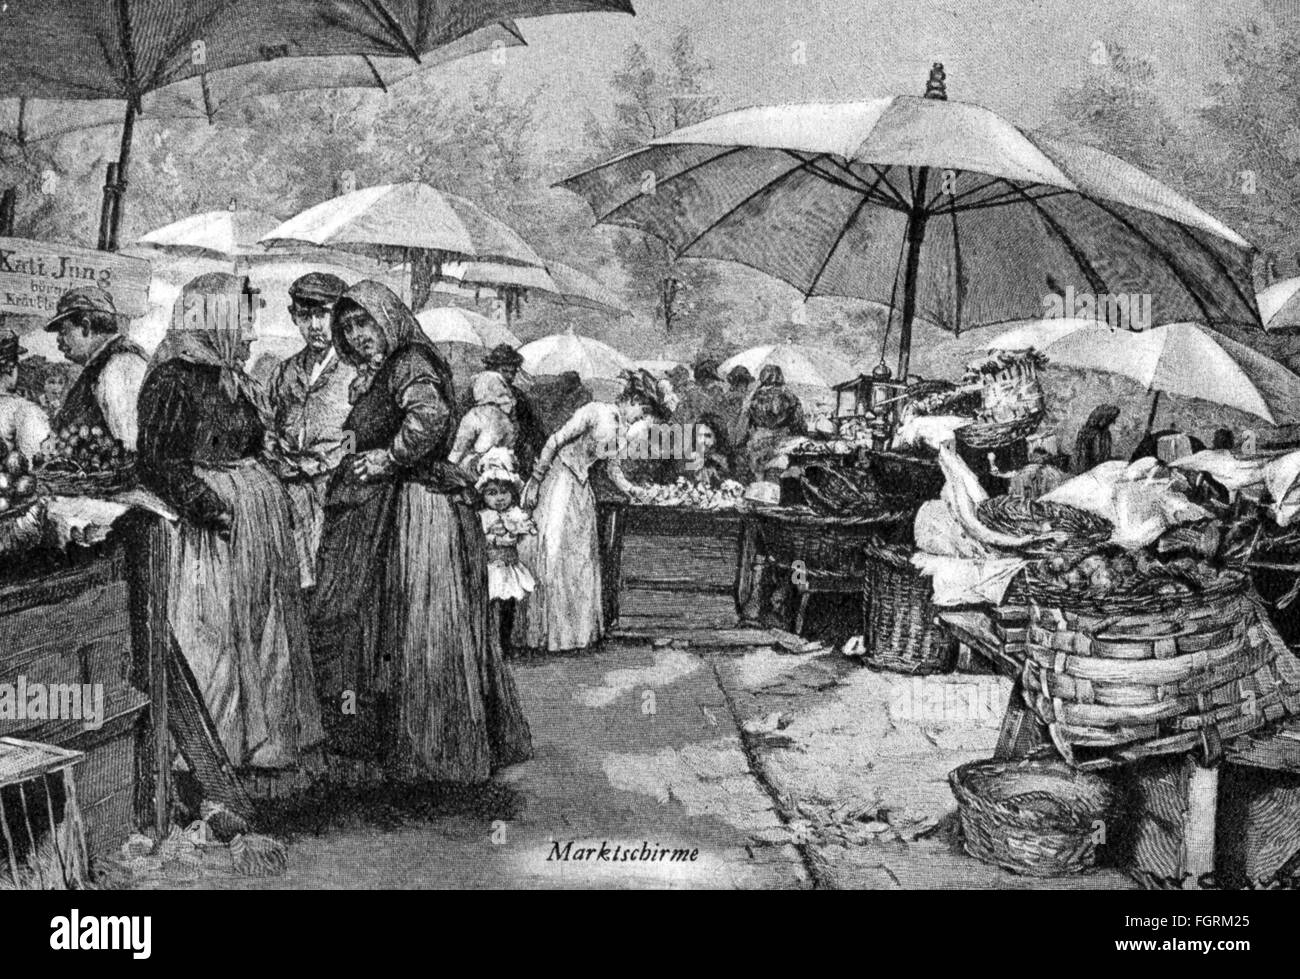 trade, markets, road traffic, stalls with sunshades, wood engraving by Wilhelm Gause (1853 - 1916), circa 1900, - Stock Image